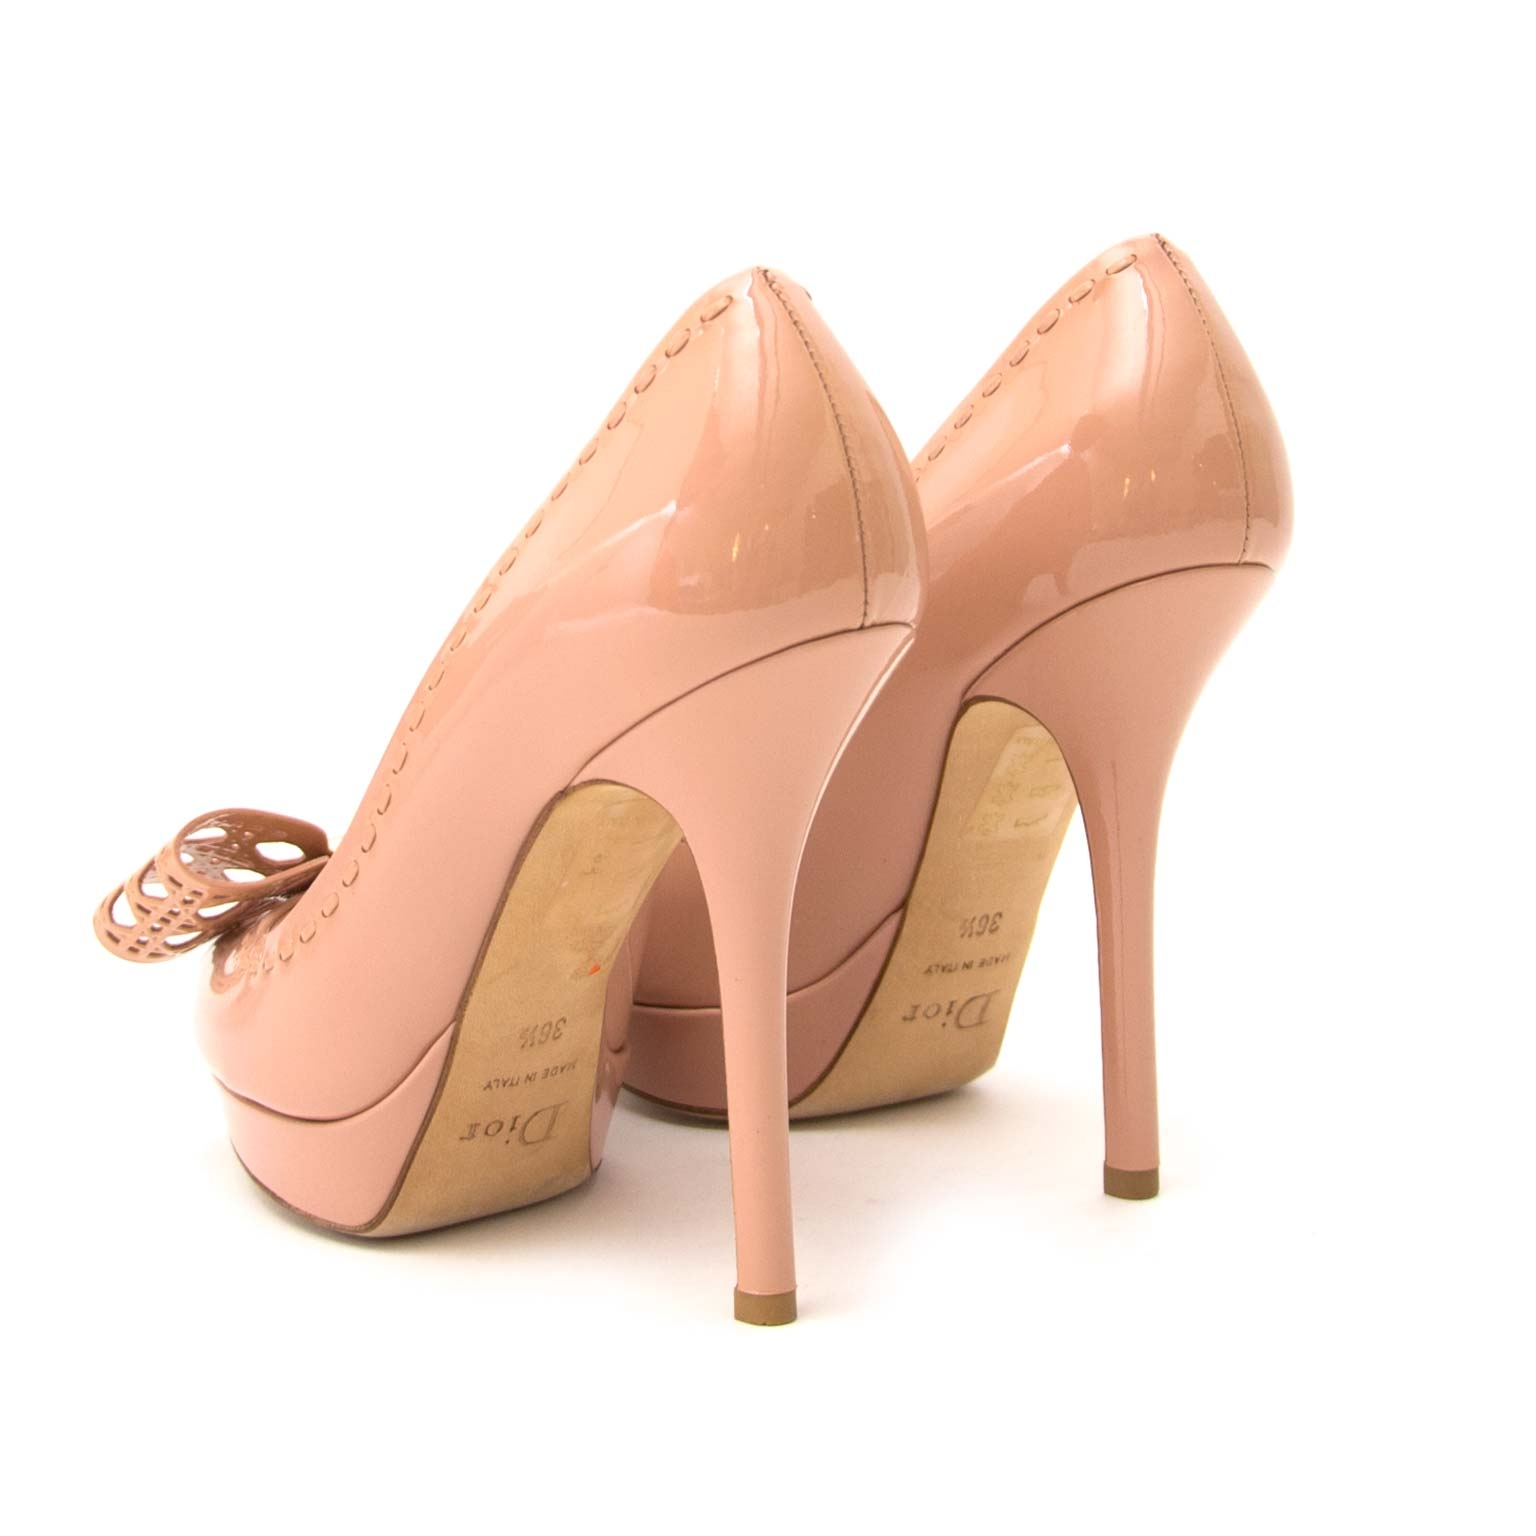 dior butterfly rosato pumps now for sale at labellov vintage fashion webshop belgium